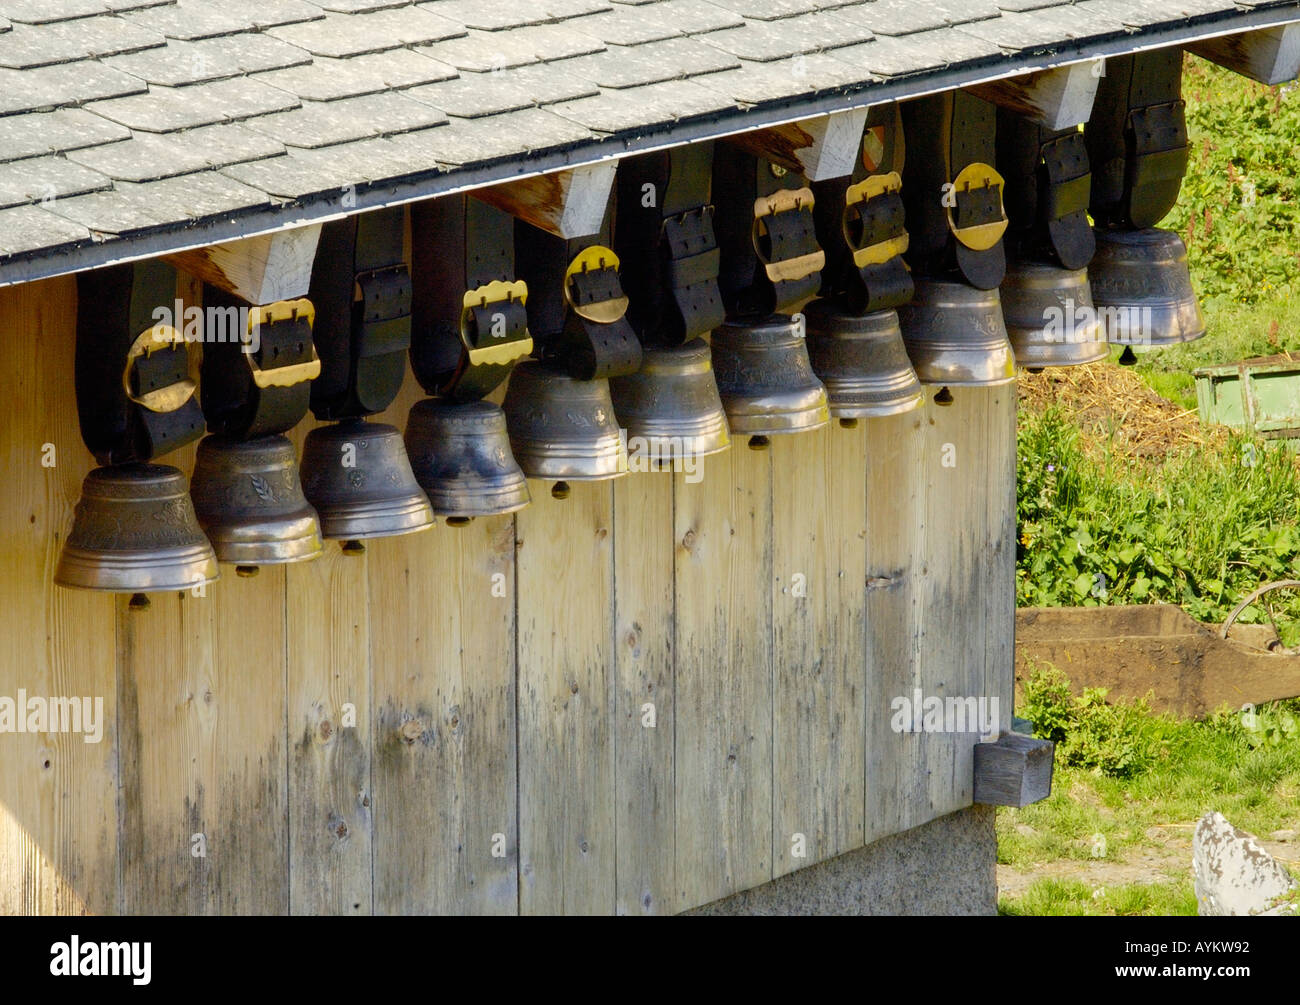 Swiss Cowbells High Resolution Stock Photography And Images Alamy